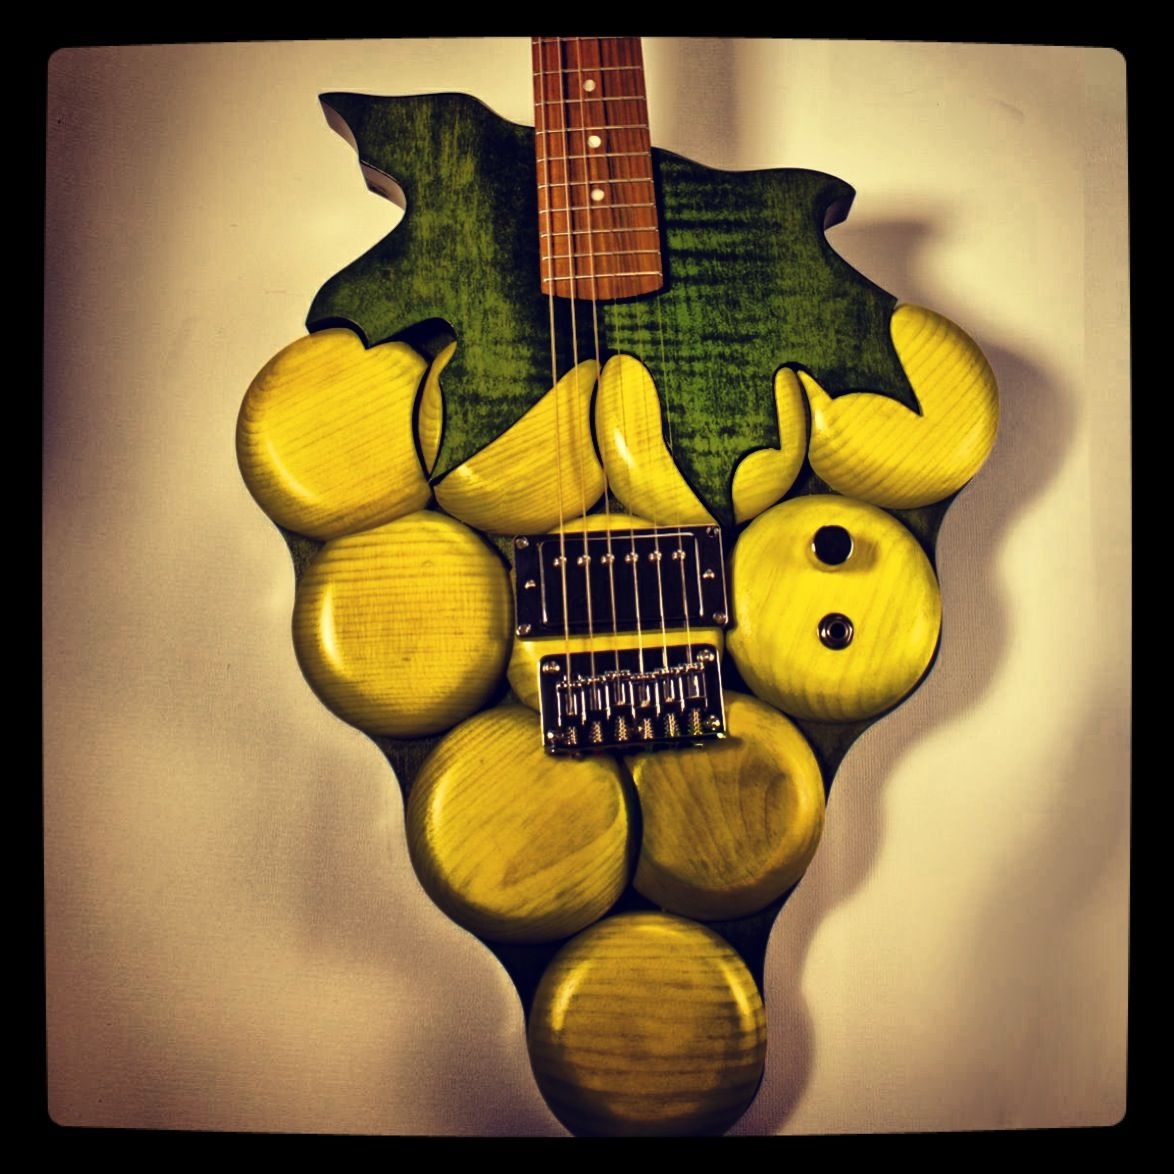 Custom Grape Guitar Follow: @Musical Harvest  www.musicalharvest.com  Custom guitar price quotes start at $1000. Email guitars@musicalharvest.com for your quote today.